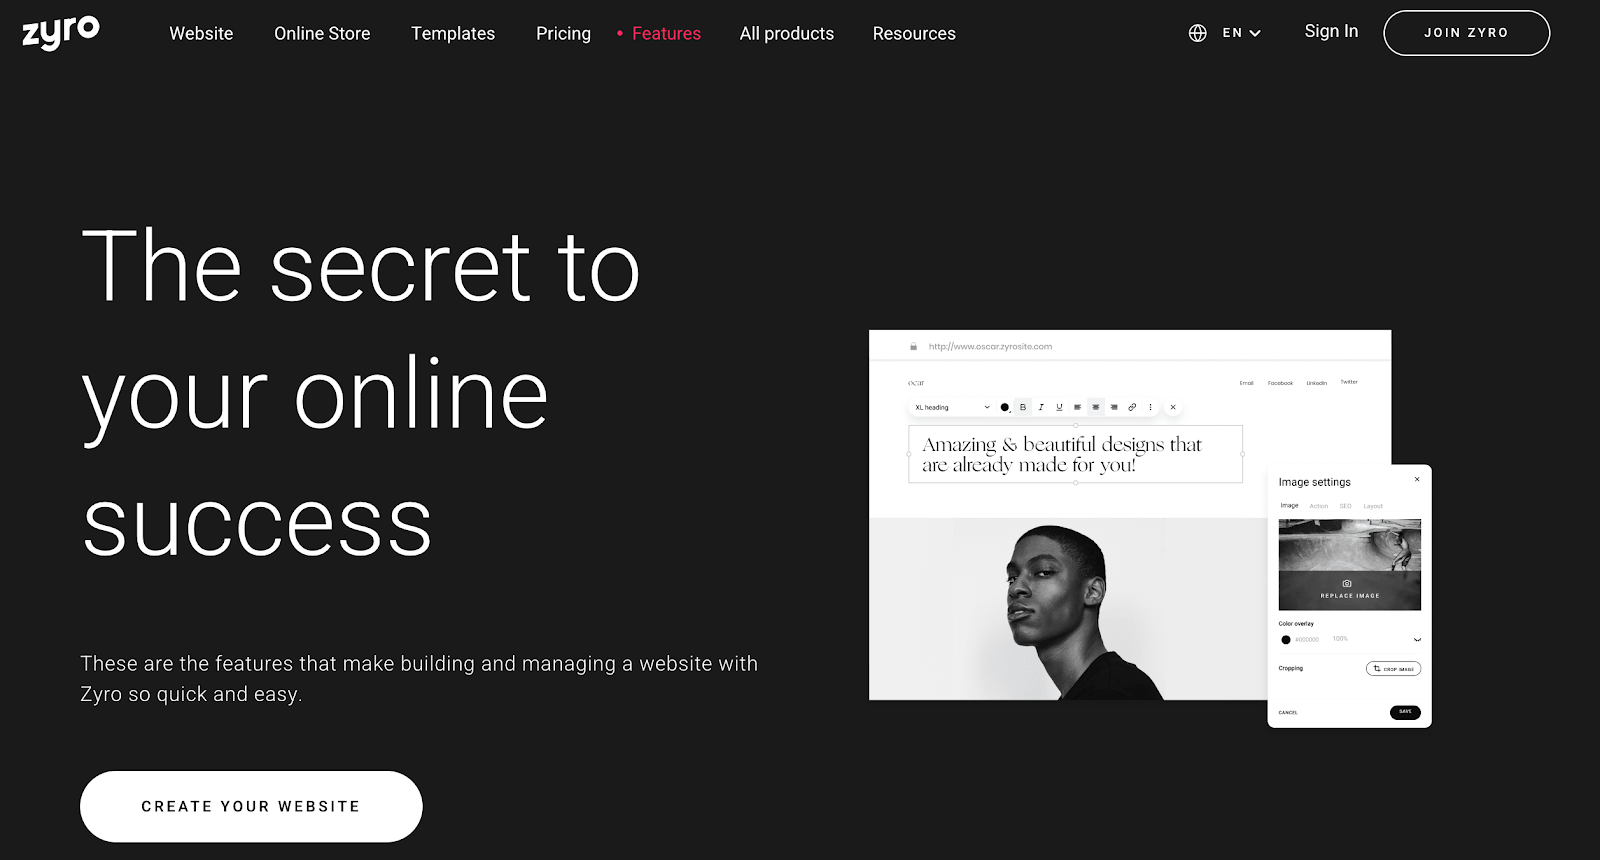 Zyro is another Squarespace alternative